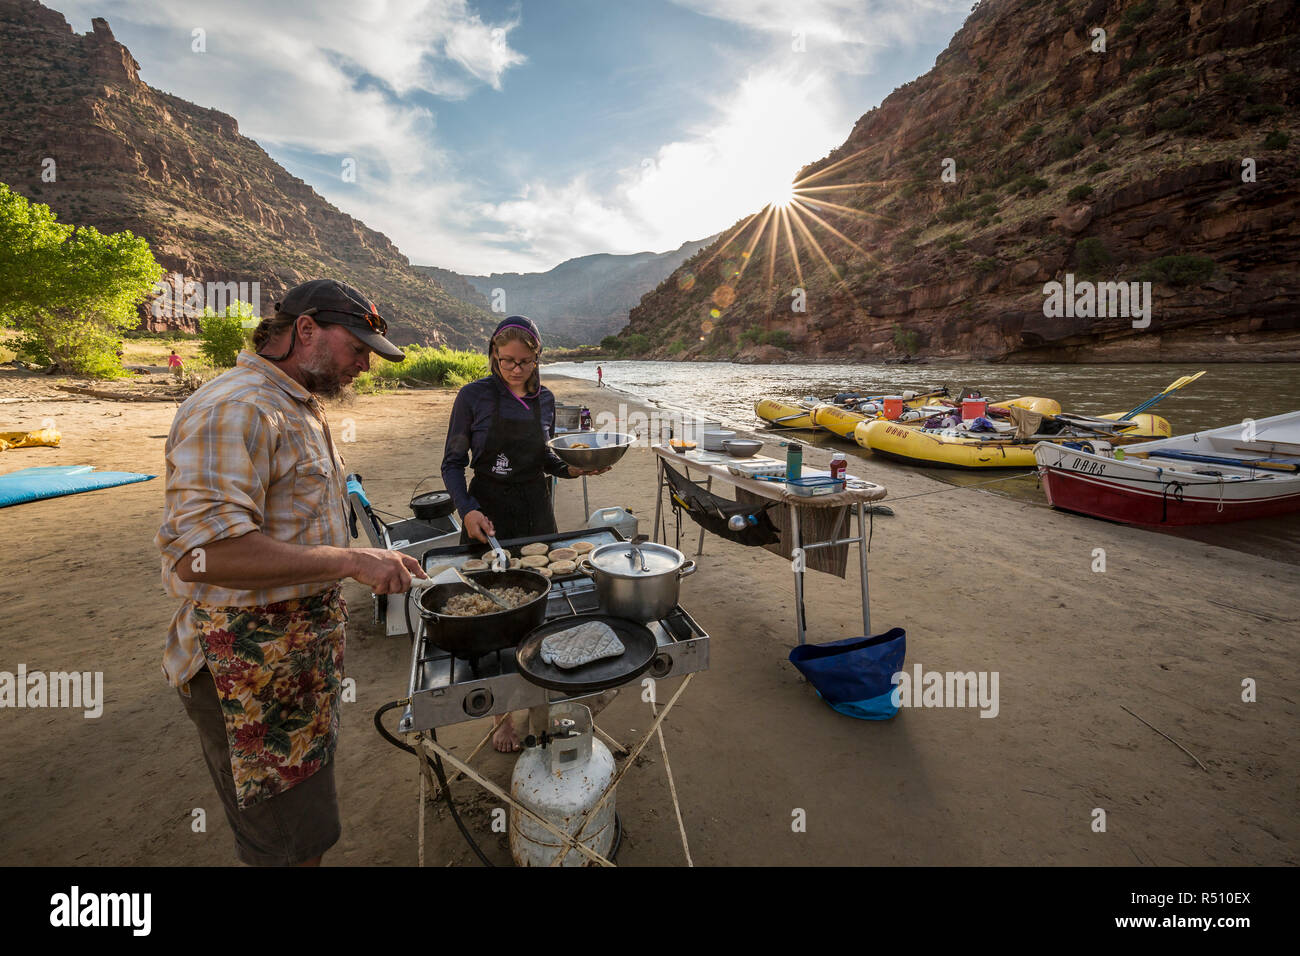 Two rafting guides cooking a meal at camp while on a Green river rafting trip, Desolation/Gray Canyon section, Utah, USA - Stock Image